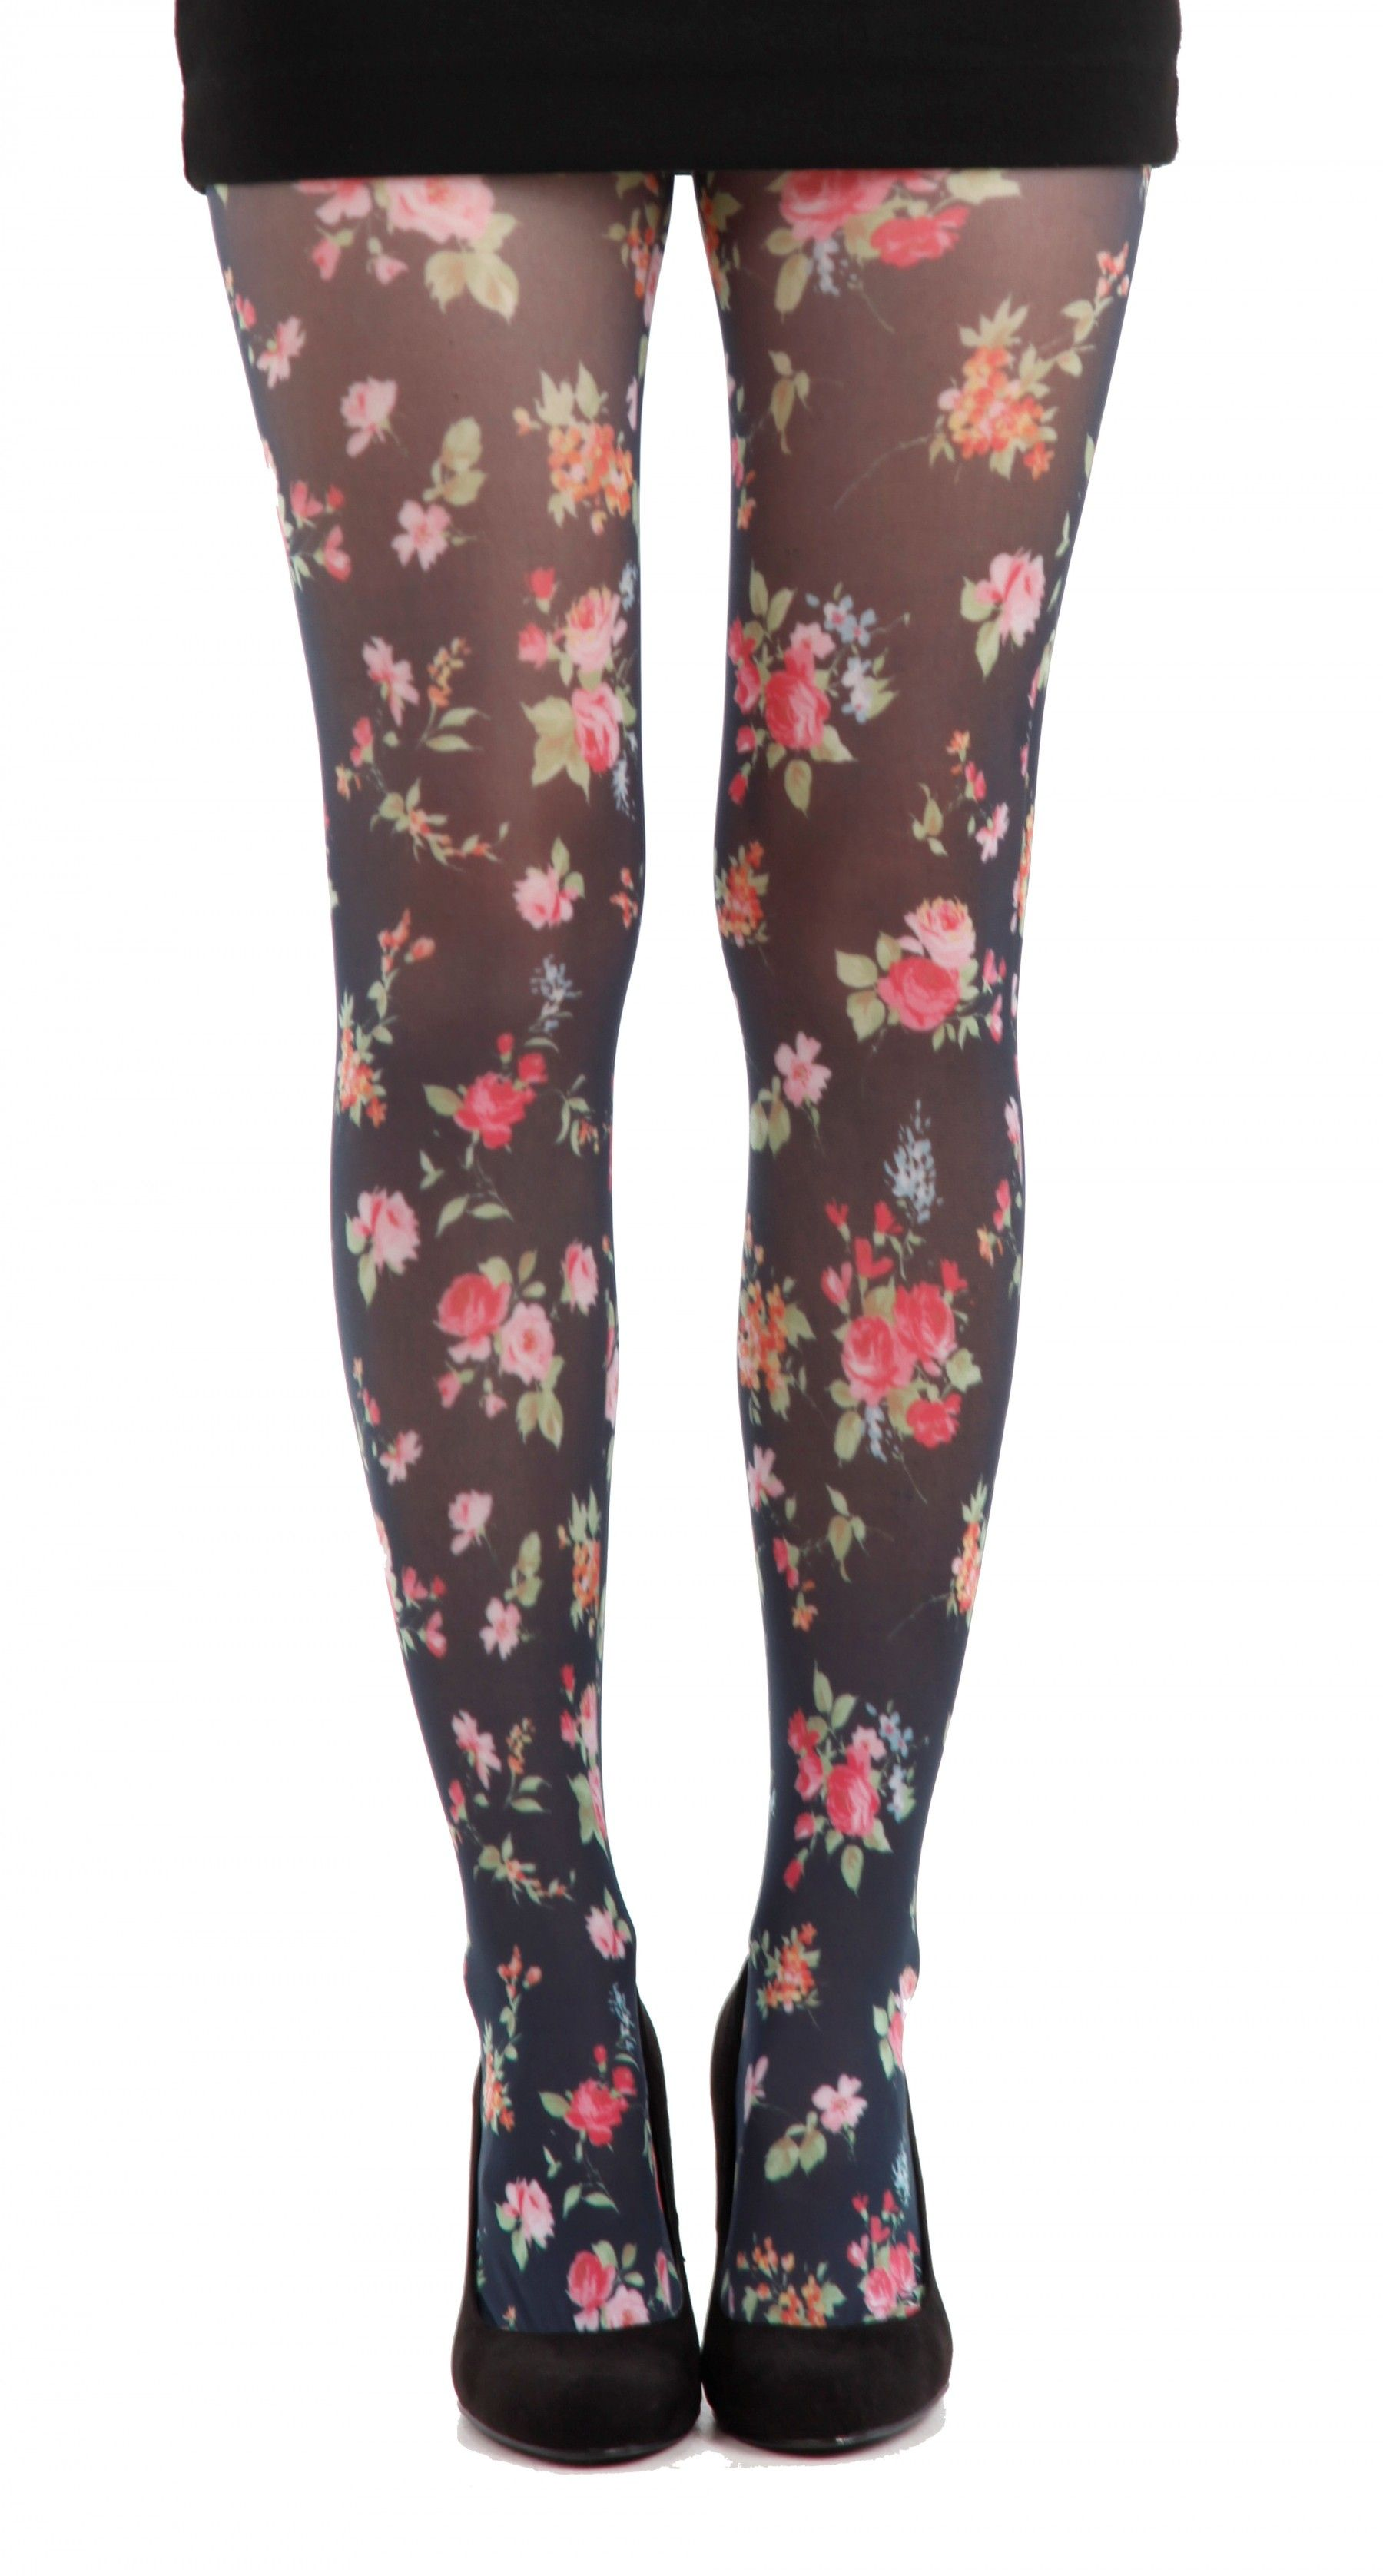 Ditsy Floral Printed Tights - Pamela Mann - Shop these tights at @fashion_tights_styles www.fashion-tights.net #tights #pantyhose #hosiery #nylons #tightslegs #tightsfeet #tightslover #tightsblogger #tightsfashion #pantyhoselegs #pantyhosefeet #pantyhoselover #pantyhoseblogger #pantyhosefashion #nylonlegs #nylonfeet #nylonlover #nylonblogger #nylonfashion #hosierylover #hosierylegs #hosieryfeet #hosieryblogger #hosieryfashion #legs